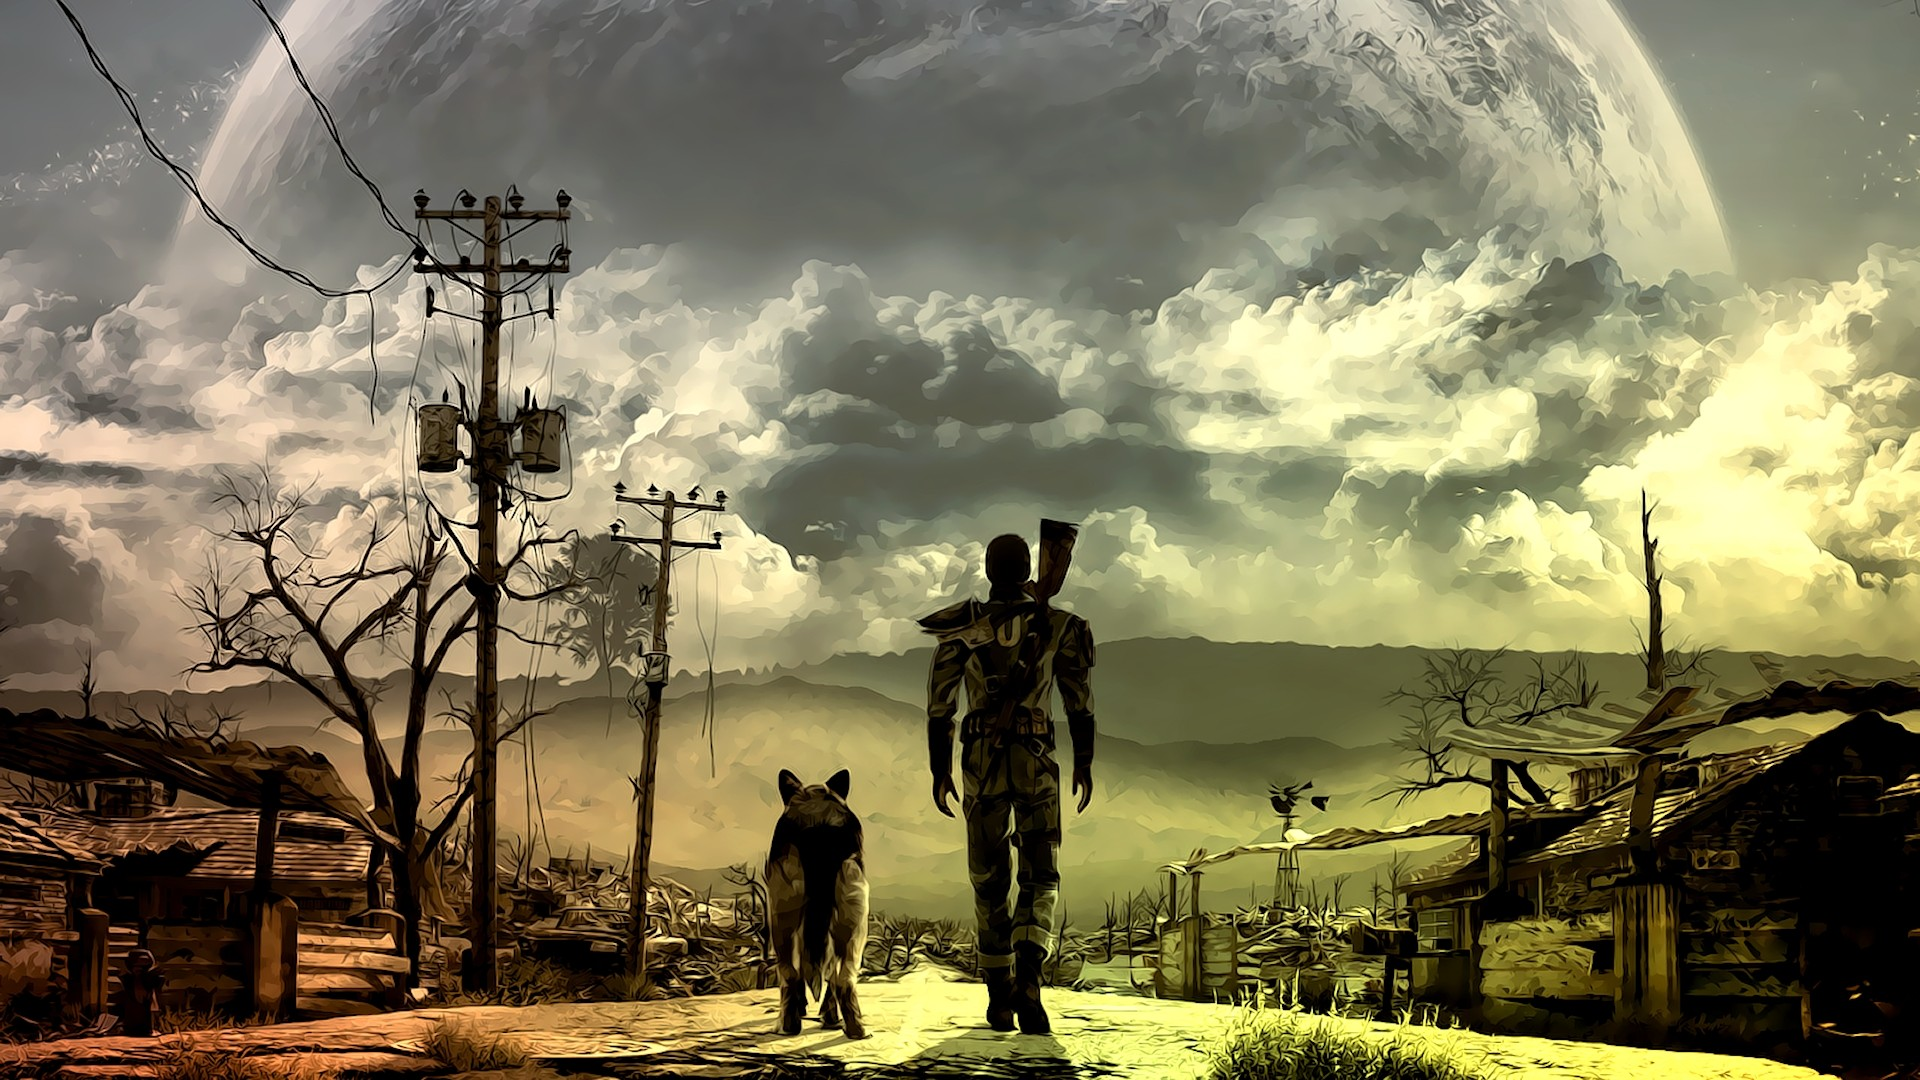 … fallout wallpaper wallpapers browse …